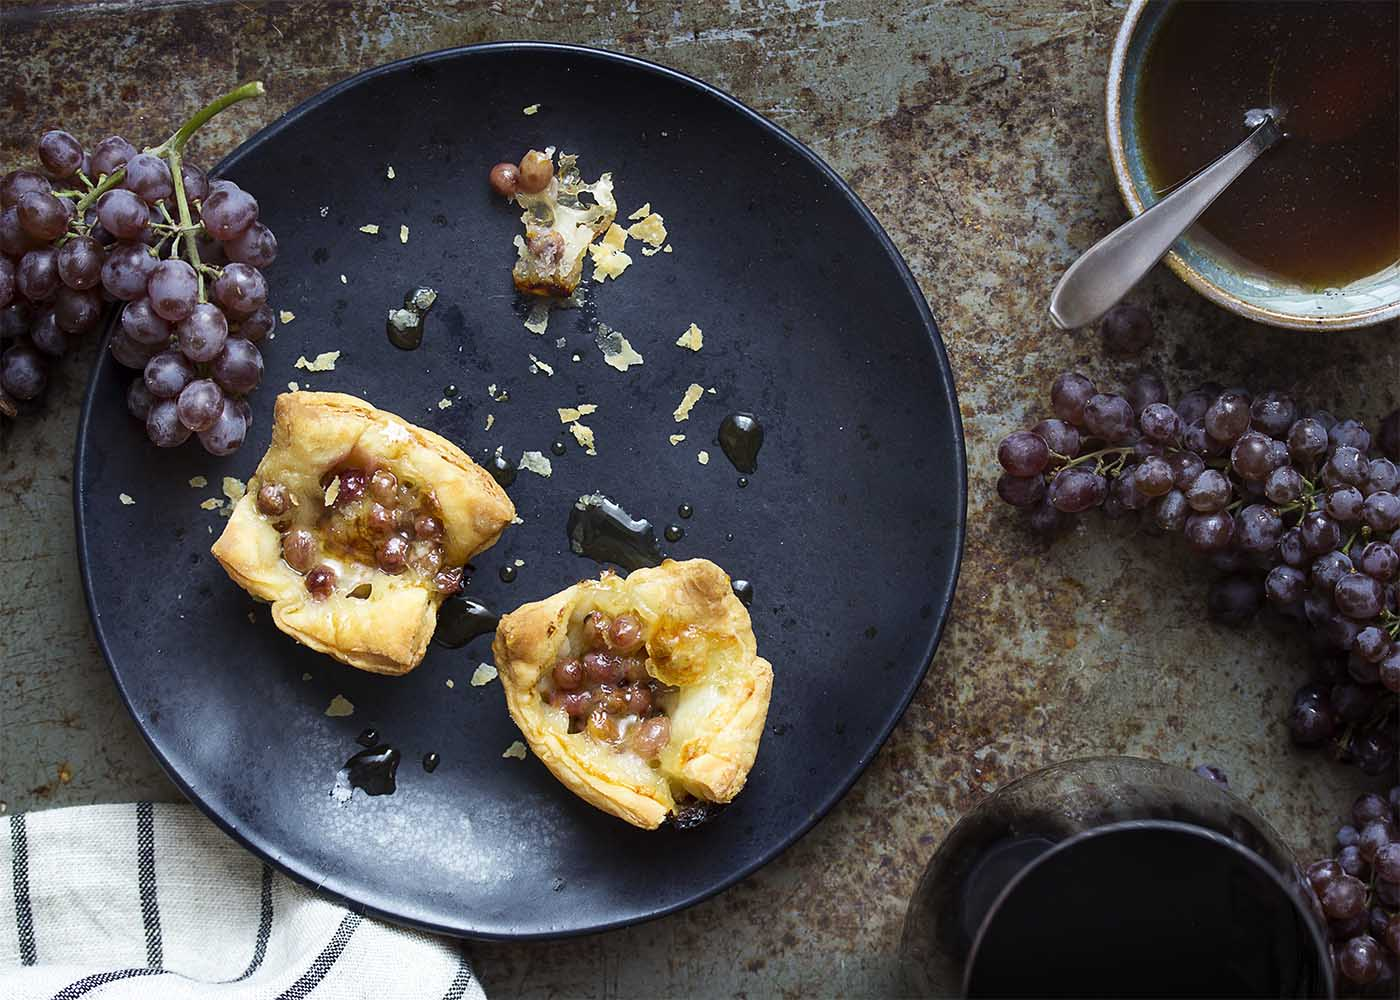 Top view of a black plate with two grape and brie tarts each topped with honey.